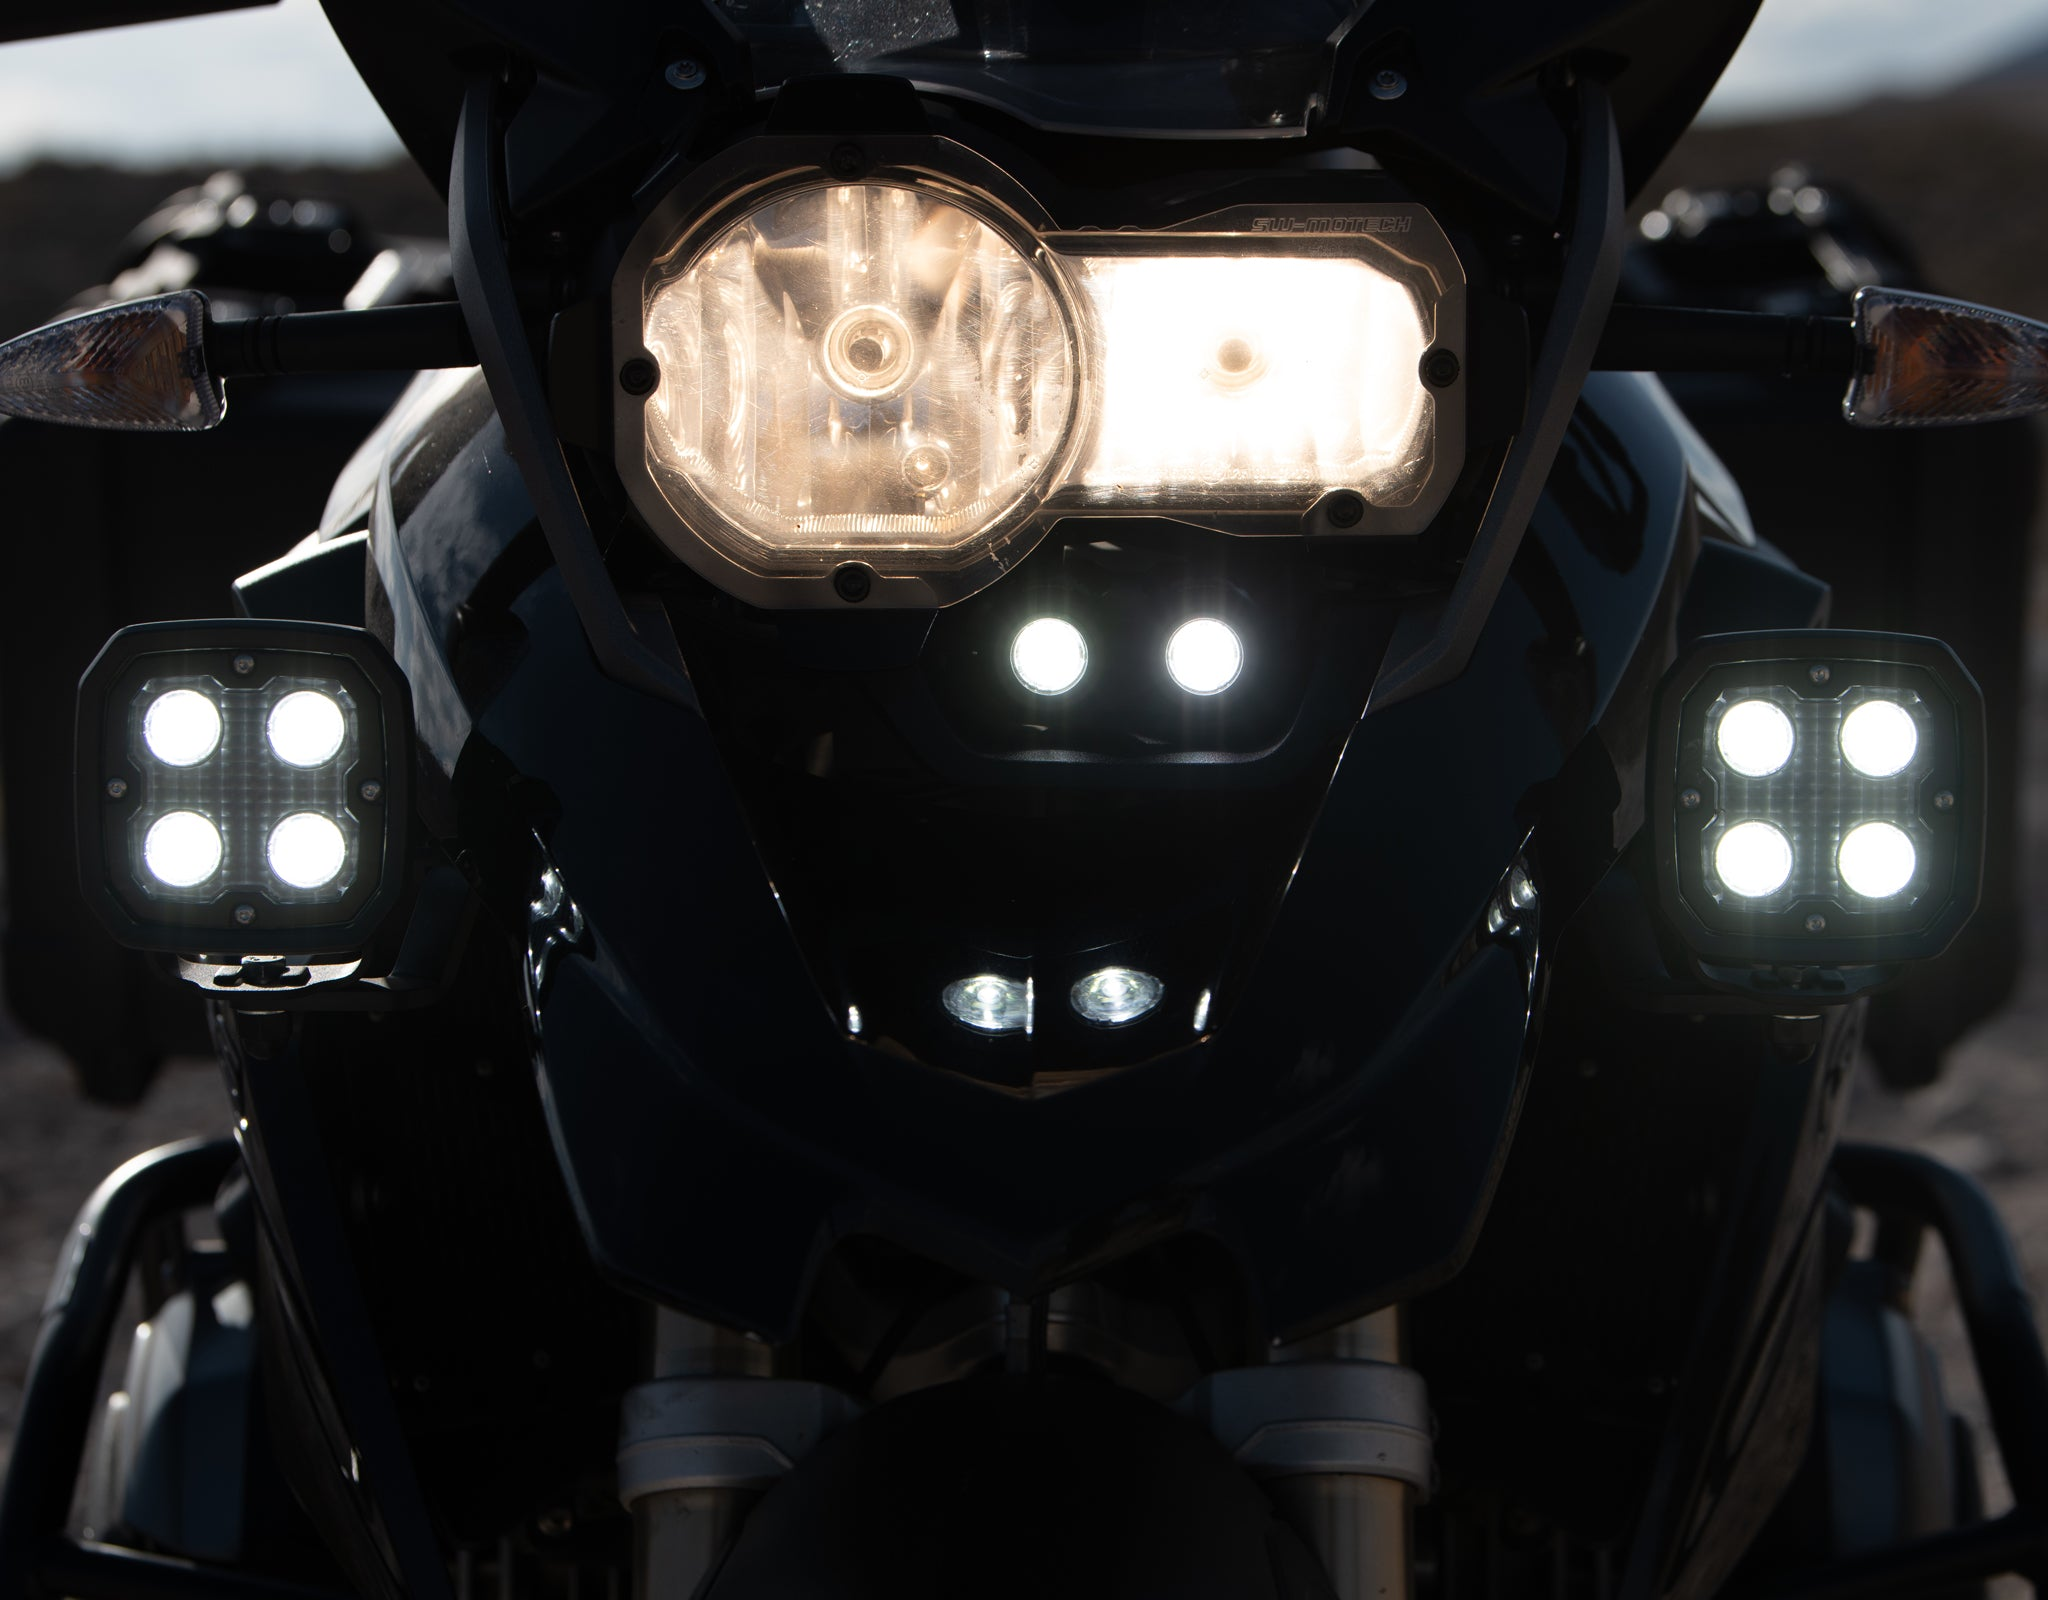 DM Light Kit tucked underneath the headlight using the BMW R1200GS Vehicle-Specific Light Mount